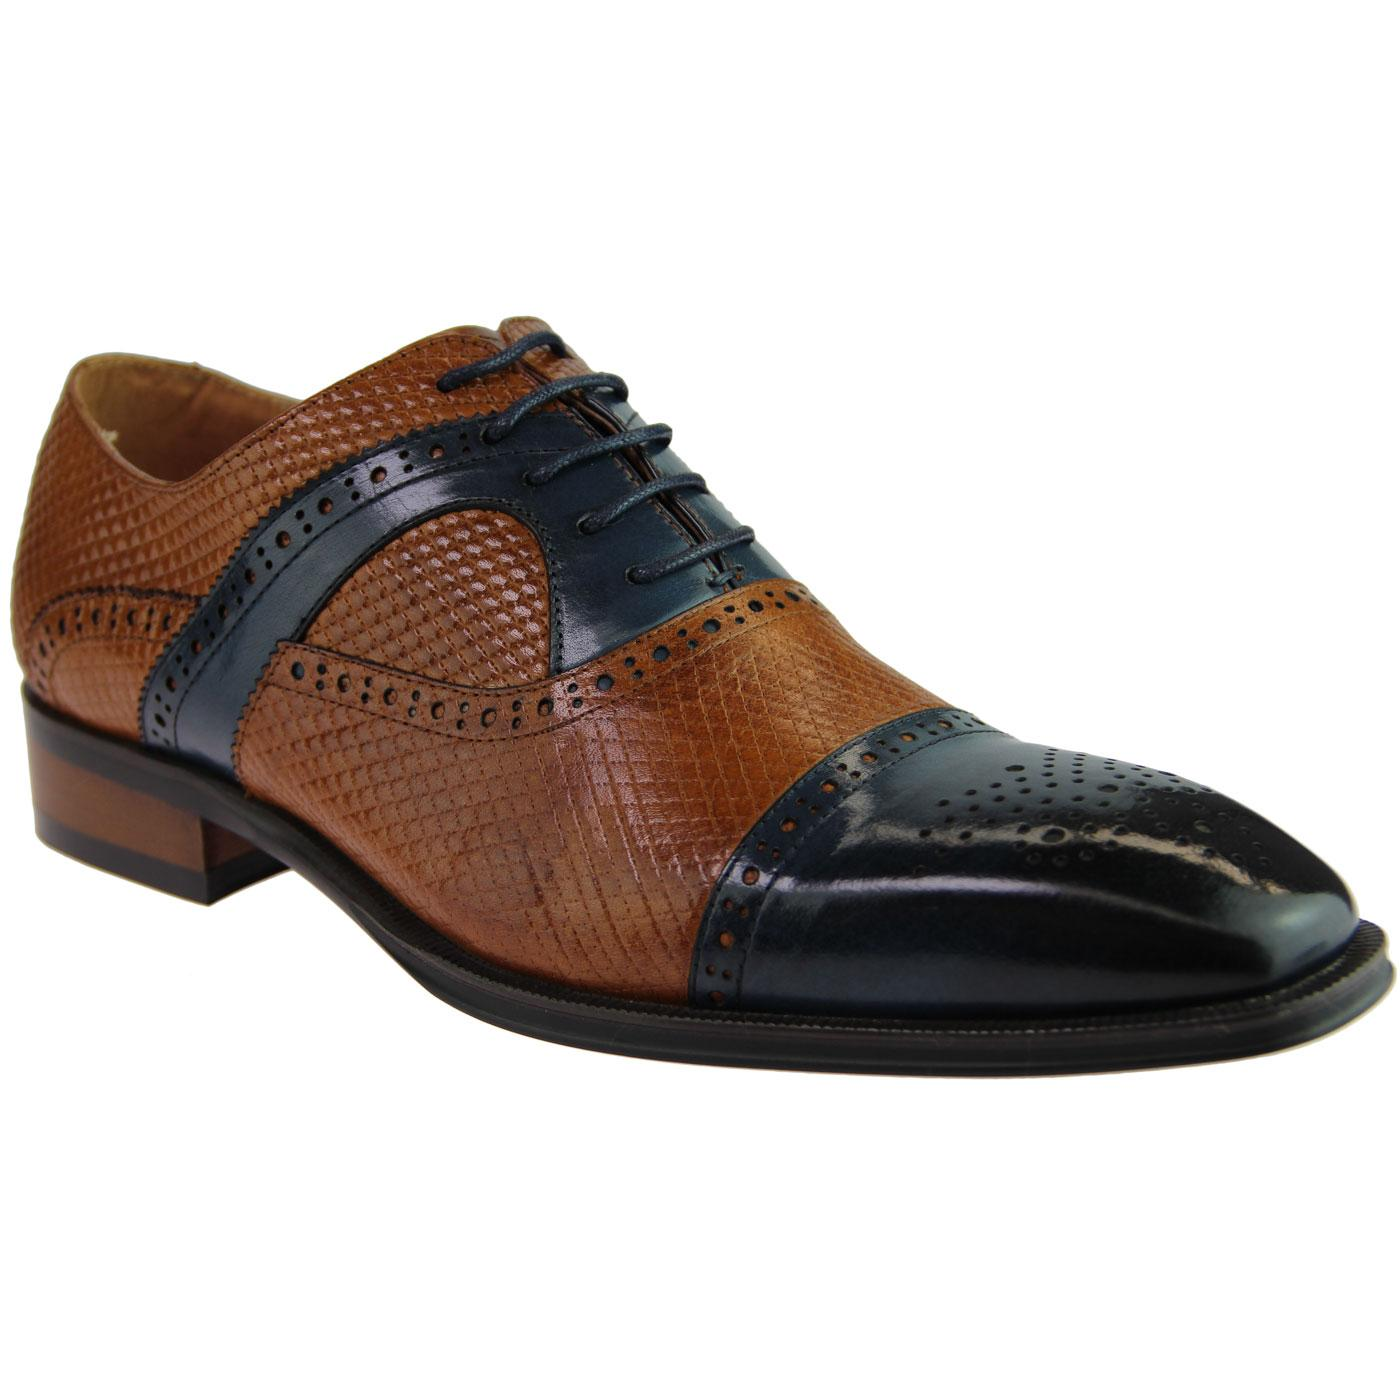 Montegro SERGIO DULETTI Mod Two Tone Brogues BROWN